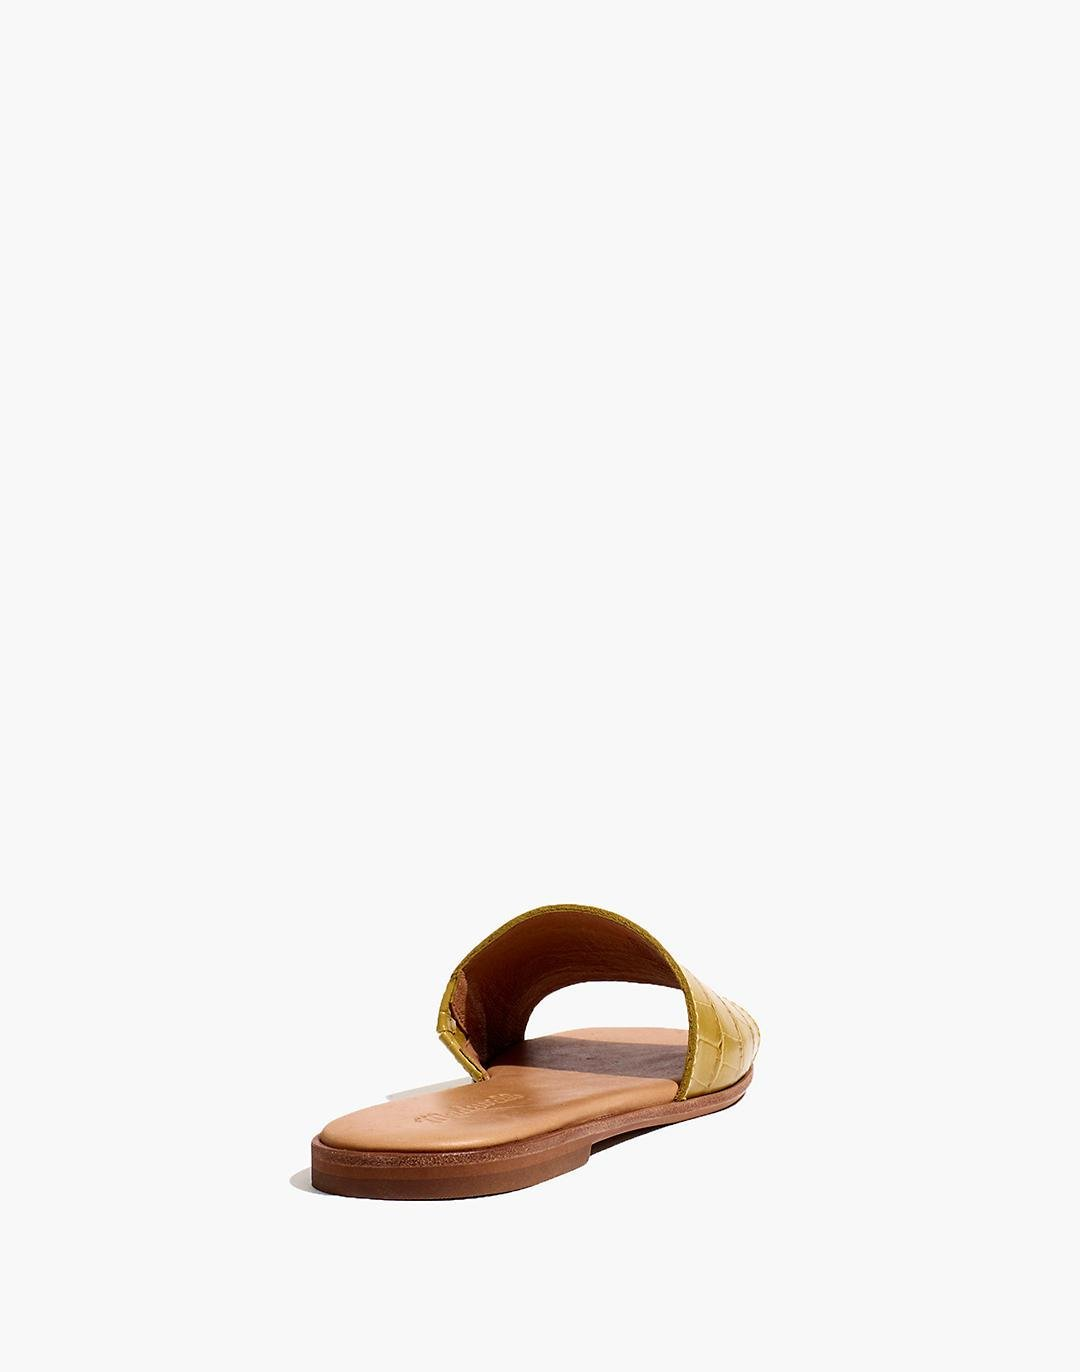 The Lianne Slide in Croc Embossed Leather 2